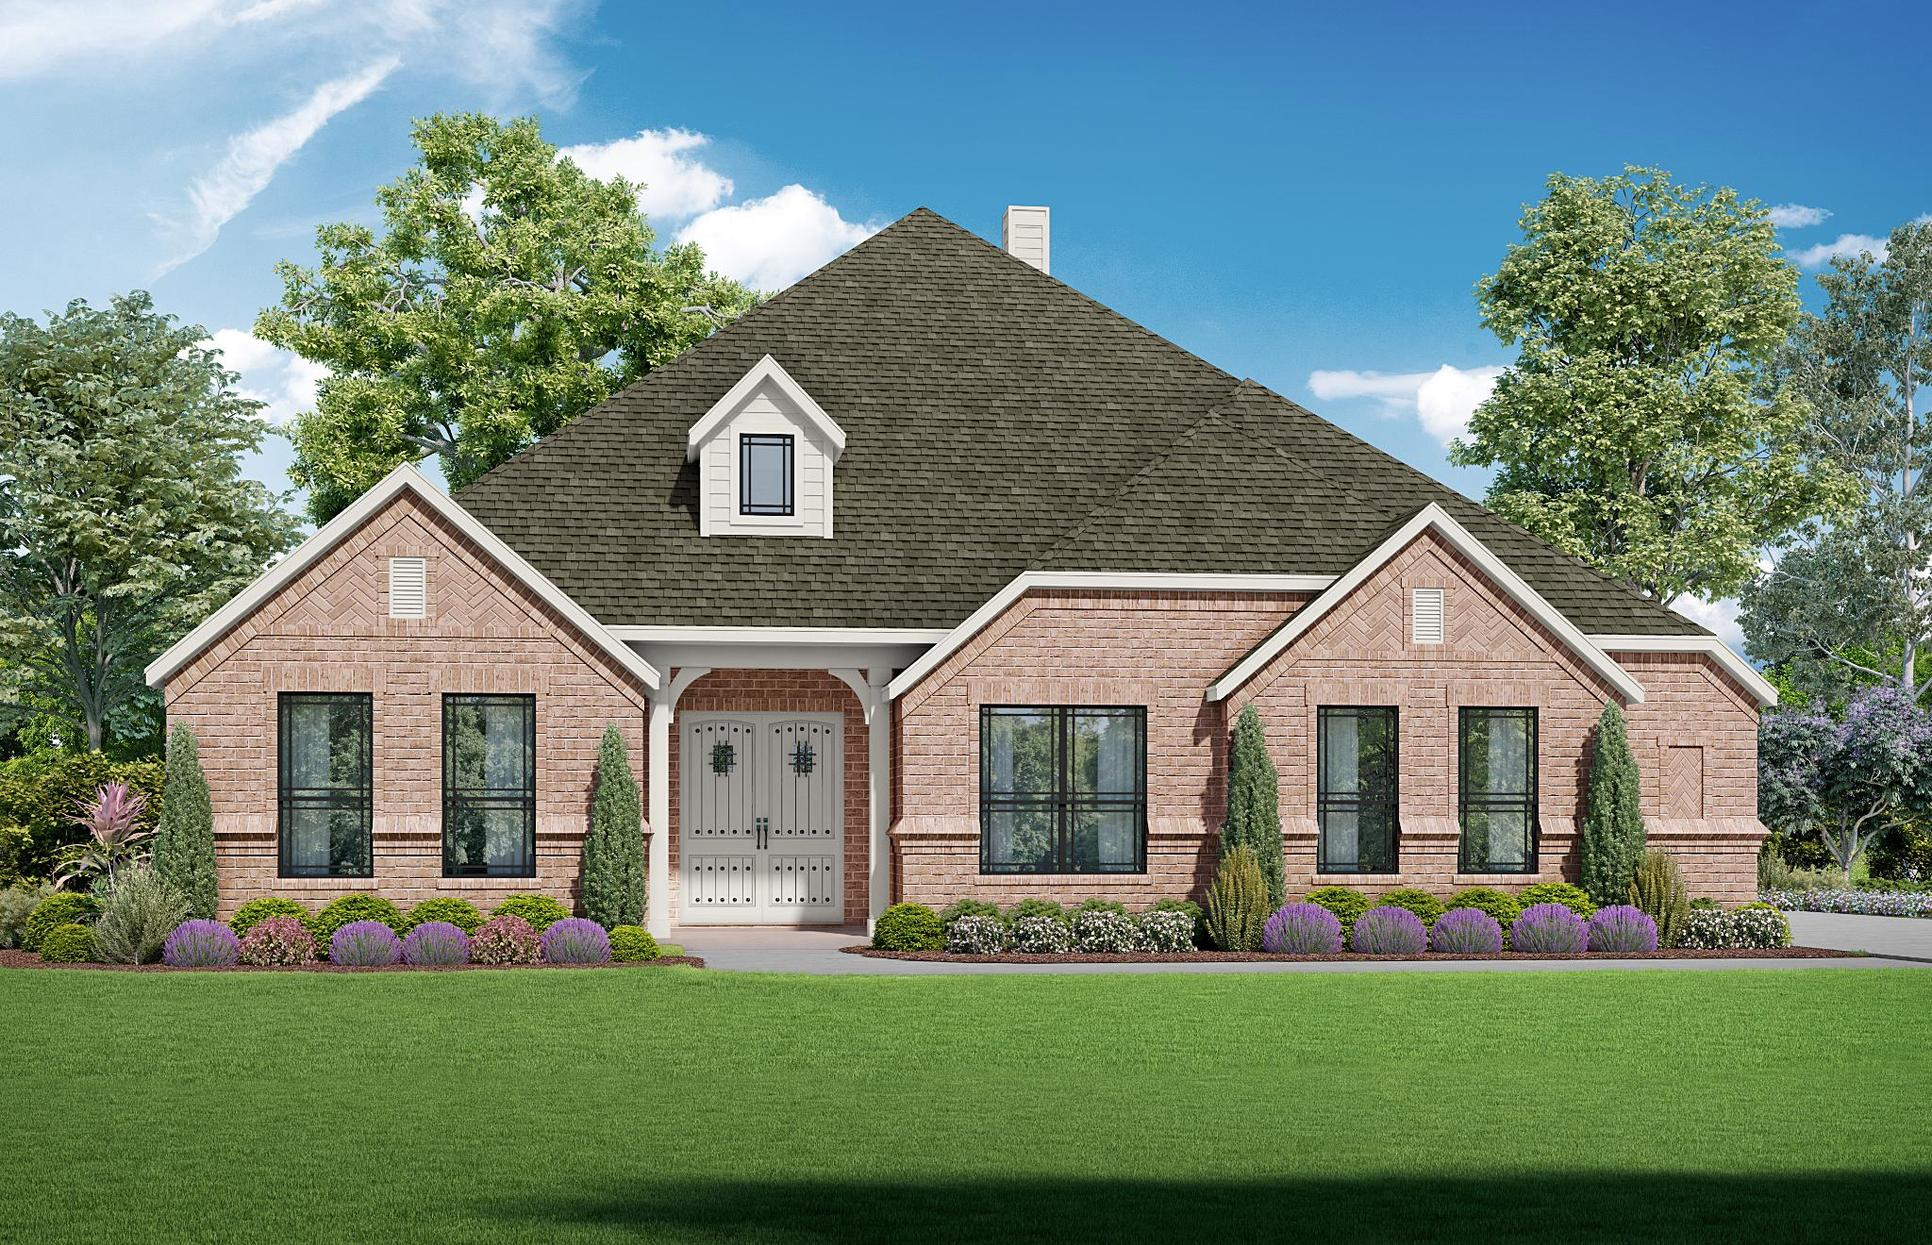 Summerlin - Elevation A. Images are artist renderings and will differ from the actual home built.:Elevation A